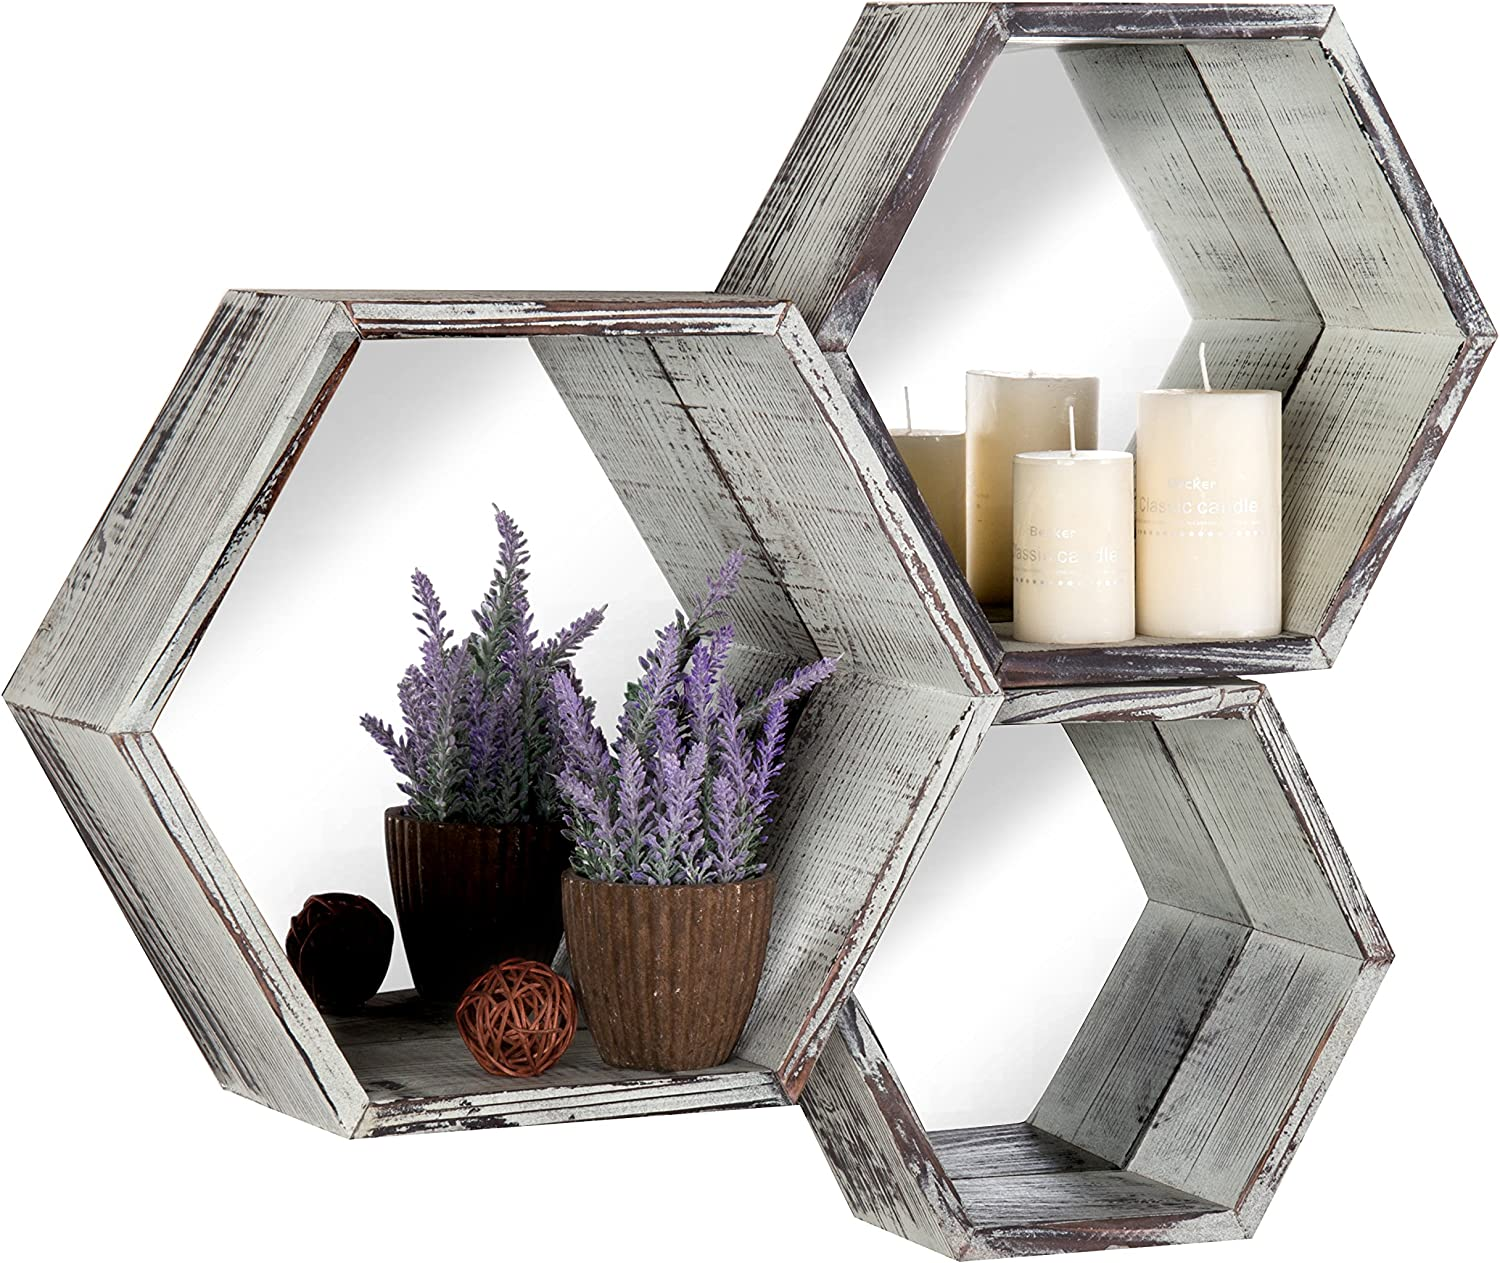 Rustic Torched Wood Hexagon Wall Mounted Floating Shelves with Mirrored Backing, Set of 3